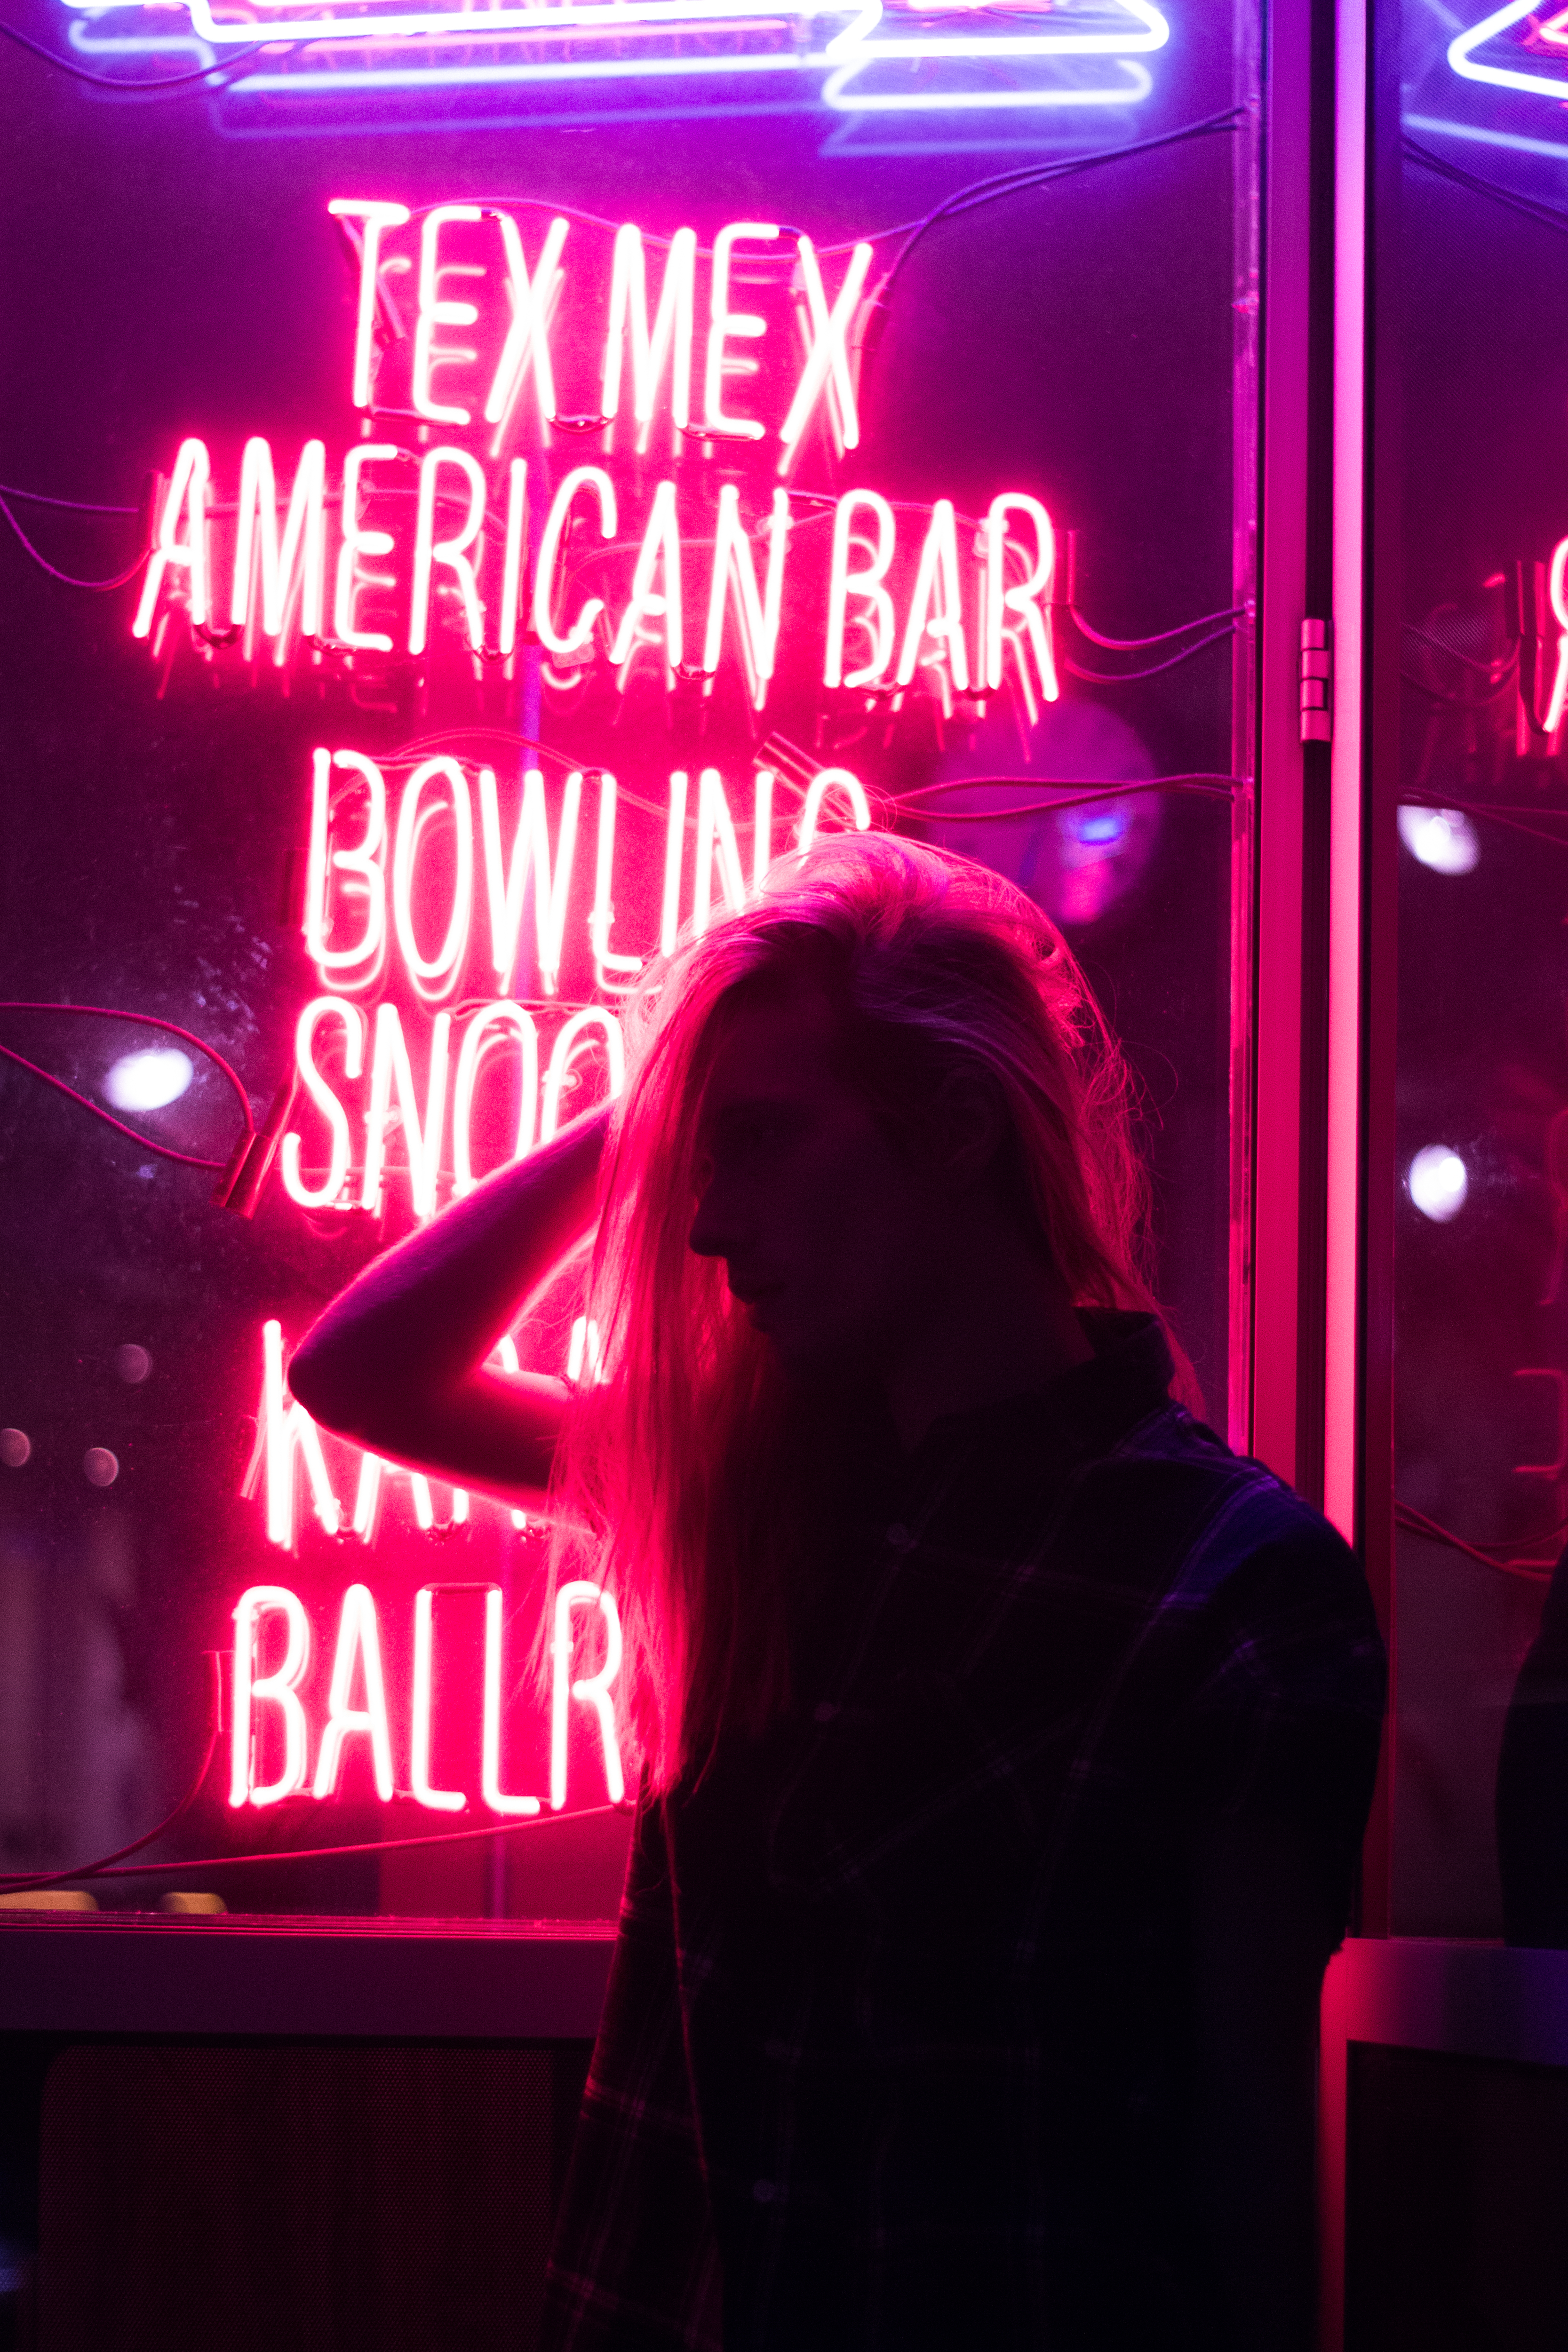 Girl Holding Her Hair Near the Neon Light Signage